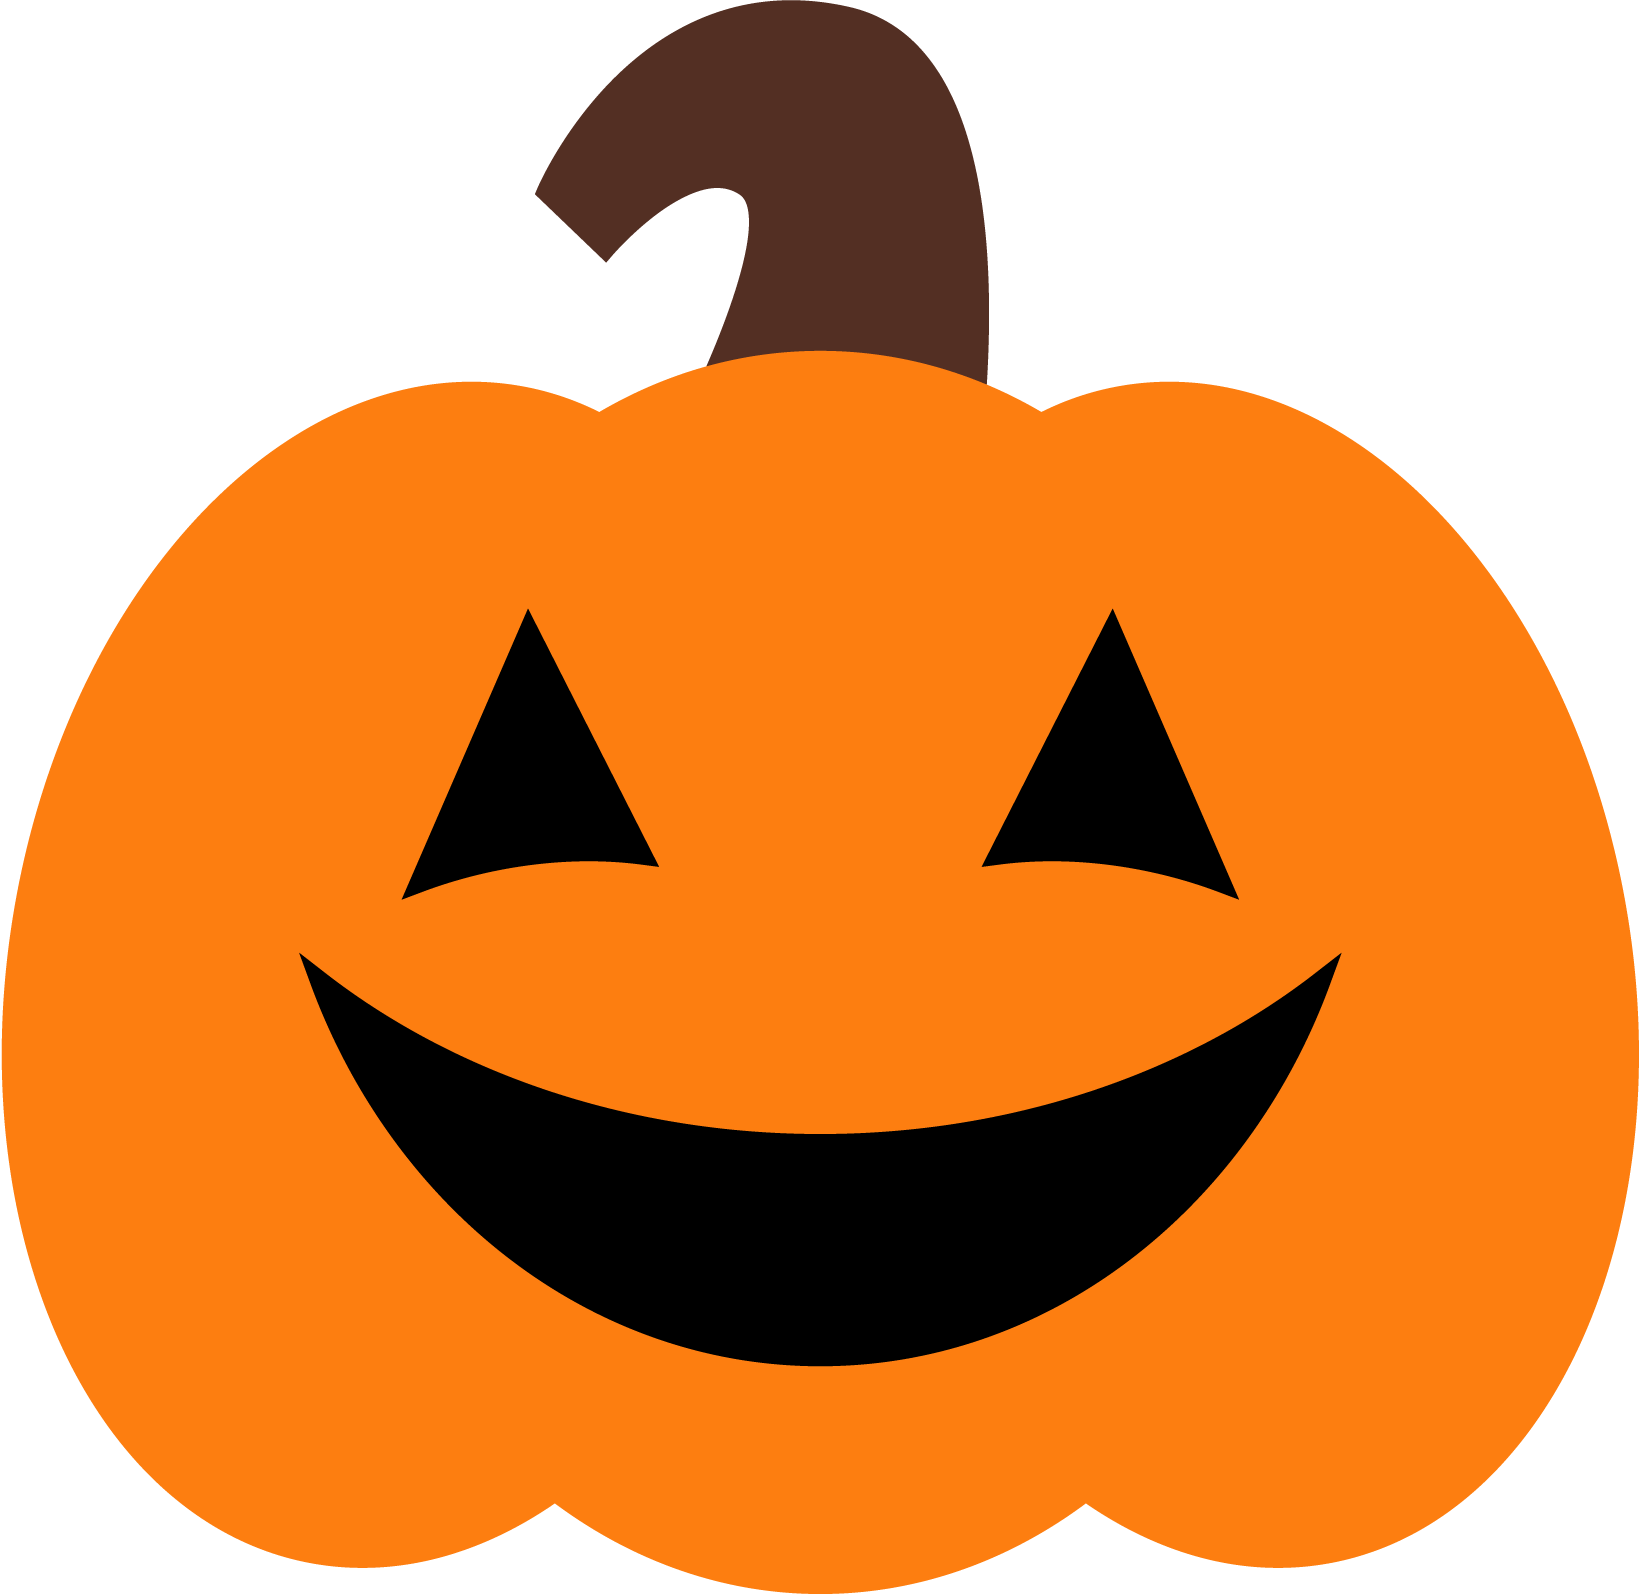 Pumpkin clipart. Halloween at getdrawings com